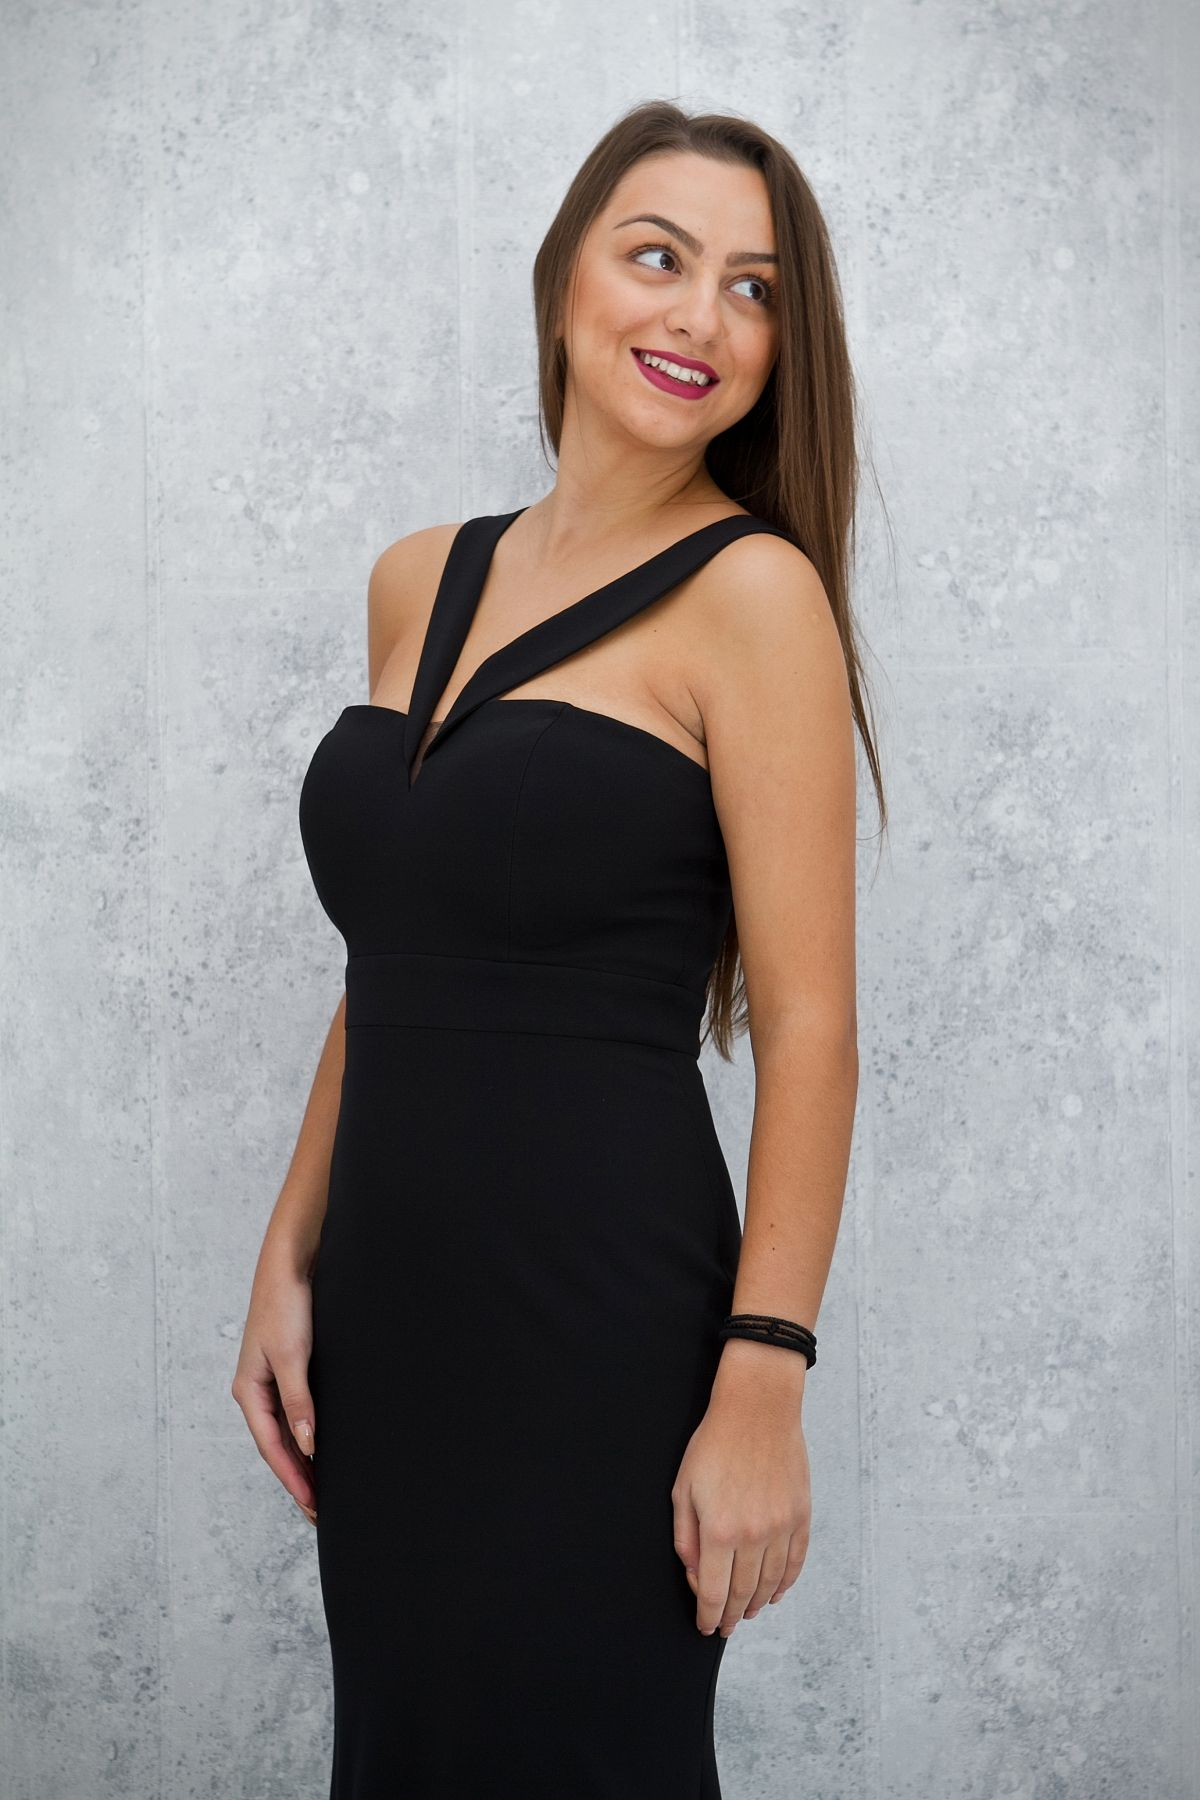 maxi ΦΟΡΕΜΑ ΣΕ ΙΣΙΑ ΓΡΑΜΜΗ - Real Lady - Shop Online 8c0aaa55557